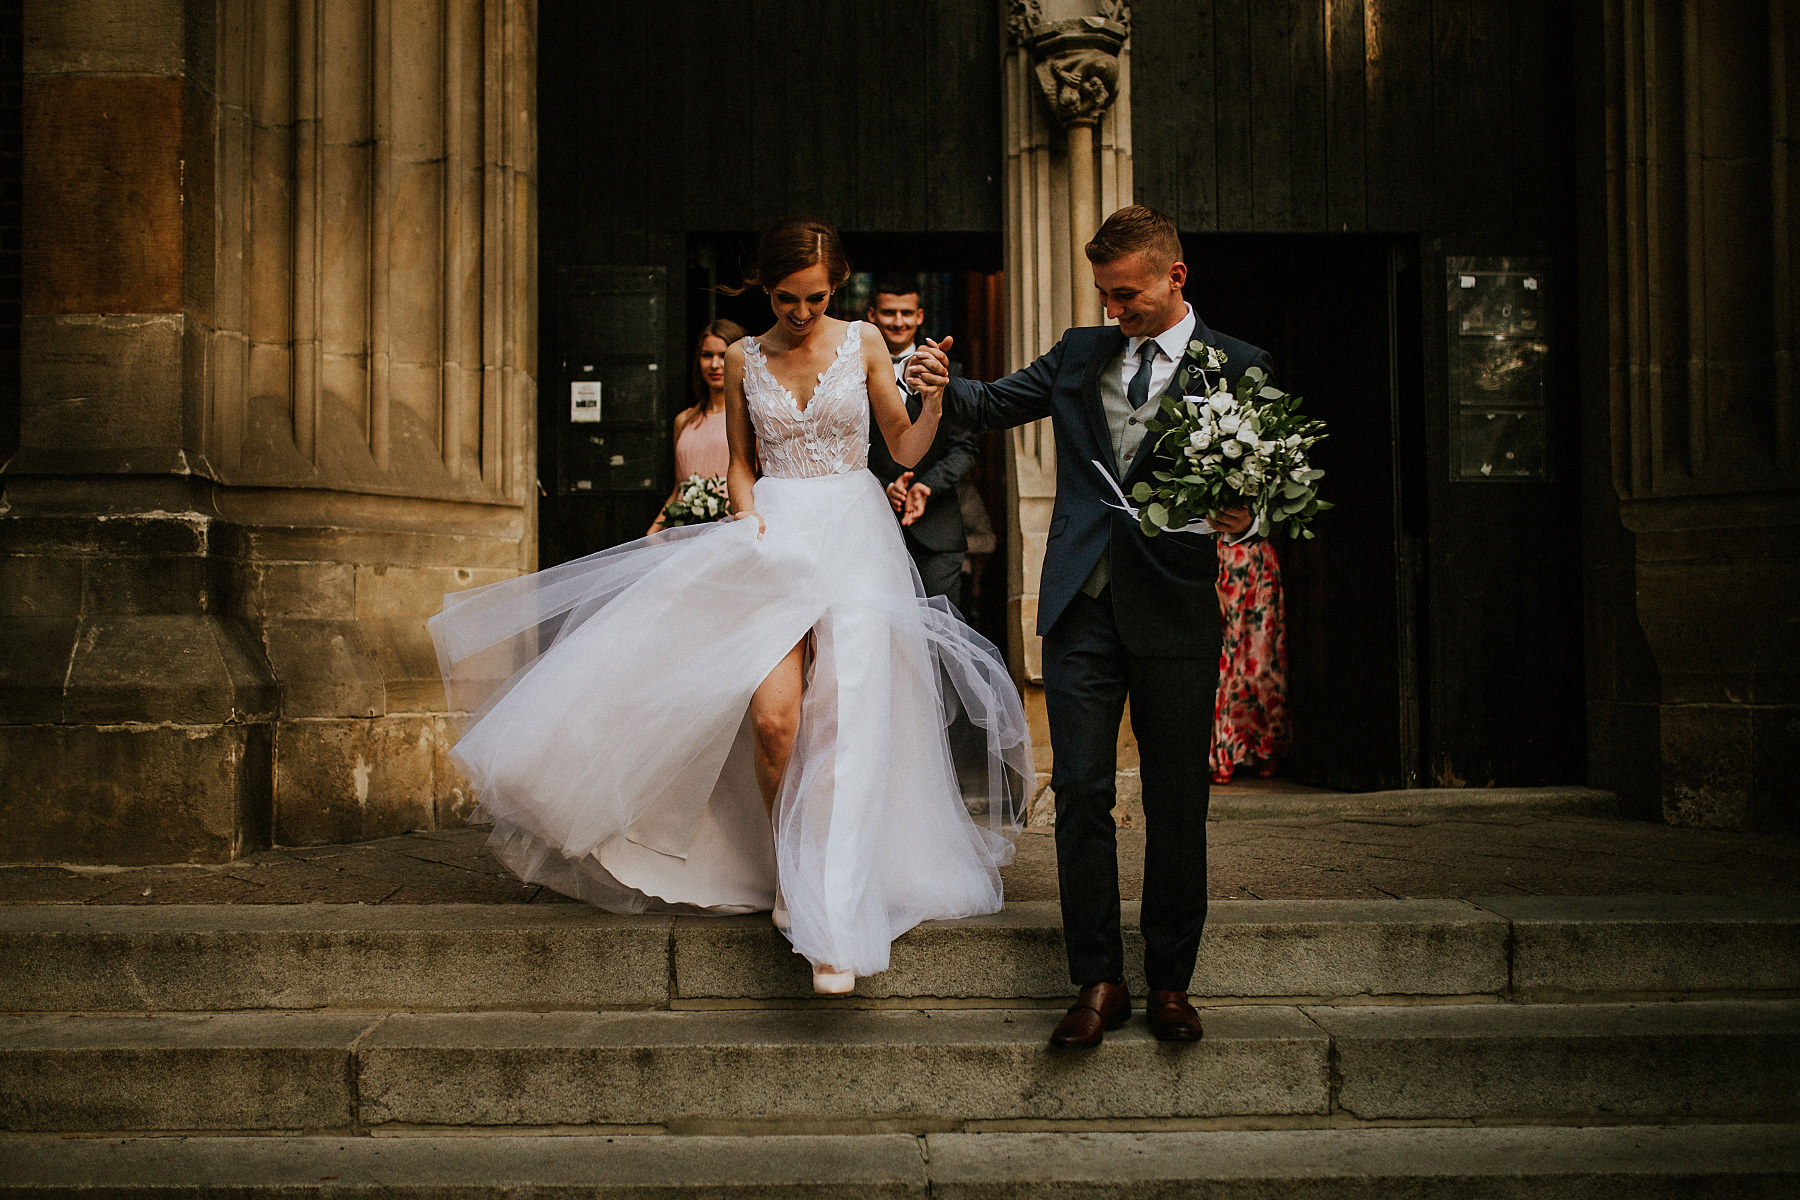 karol nycz wedding photographer wrocław